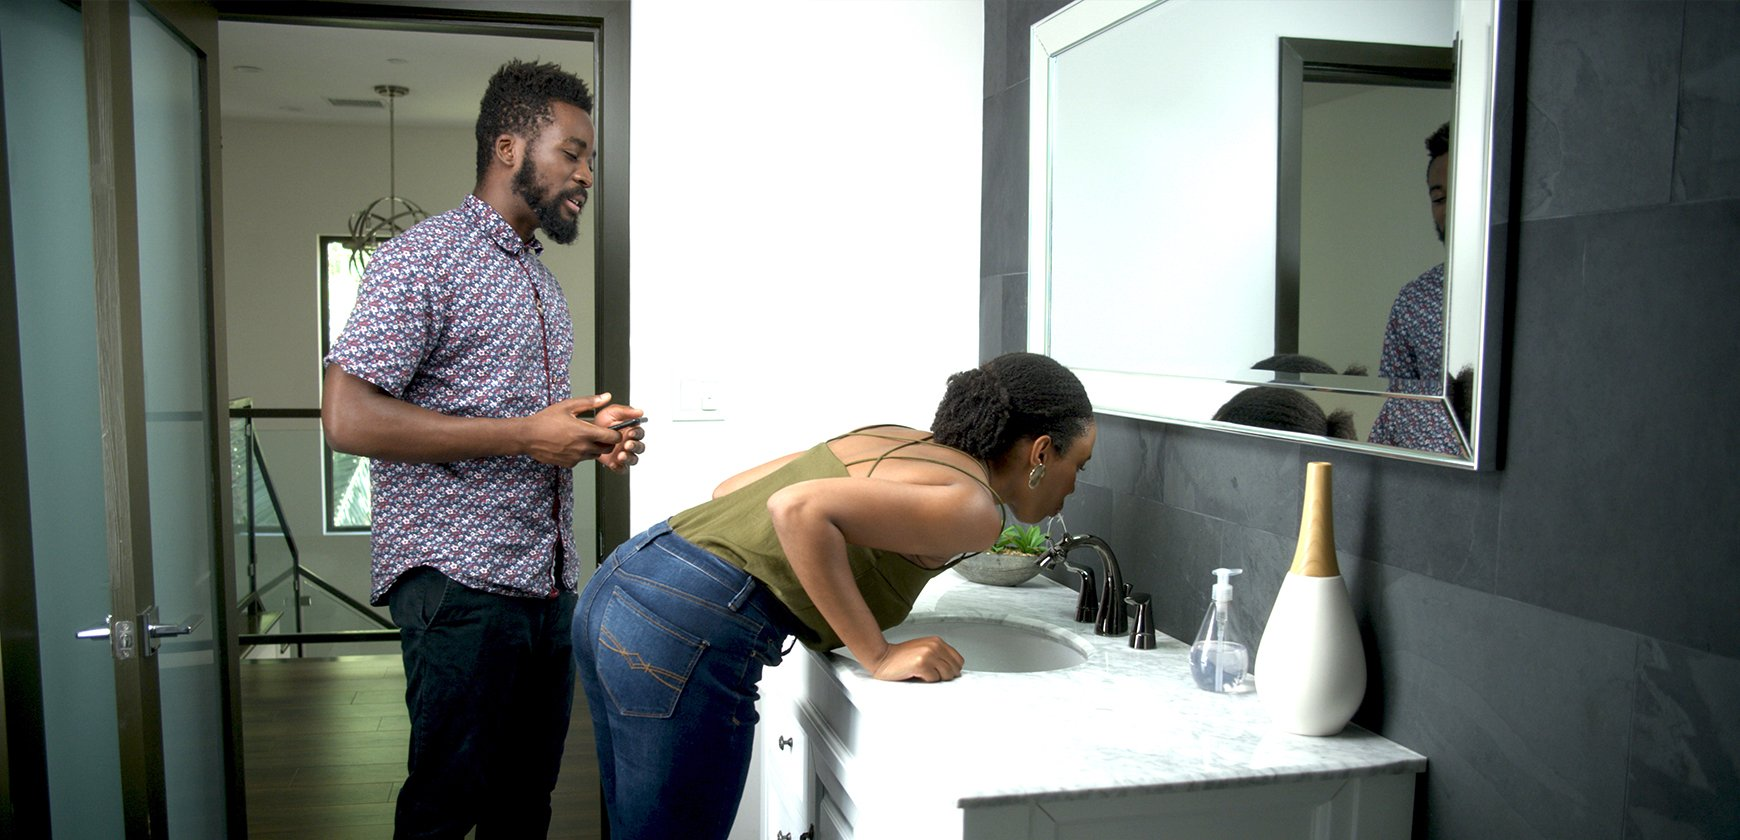 Young couple drinking water from Nasoni Fountain Faucet in modern bathroom